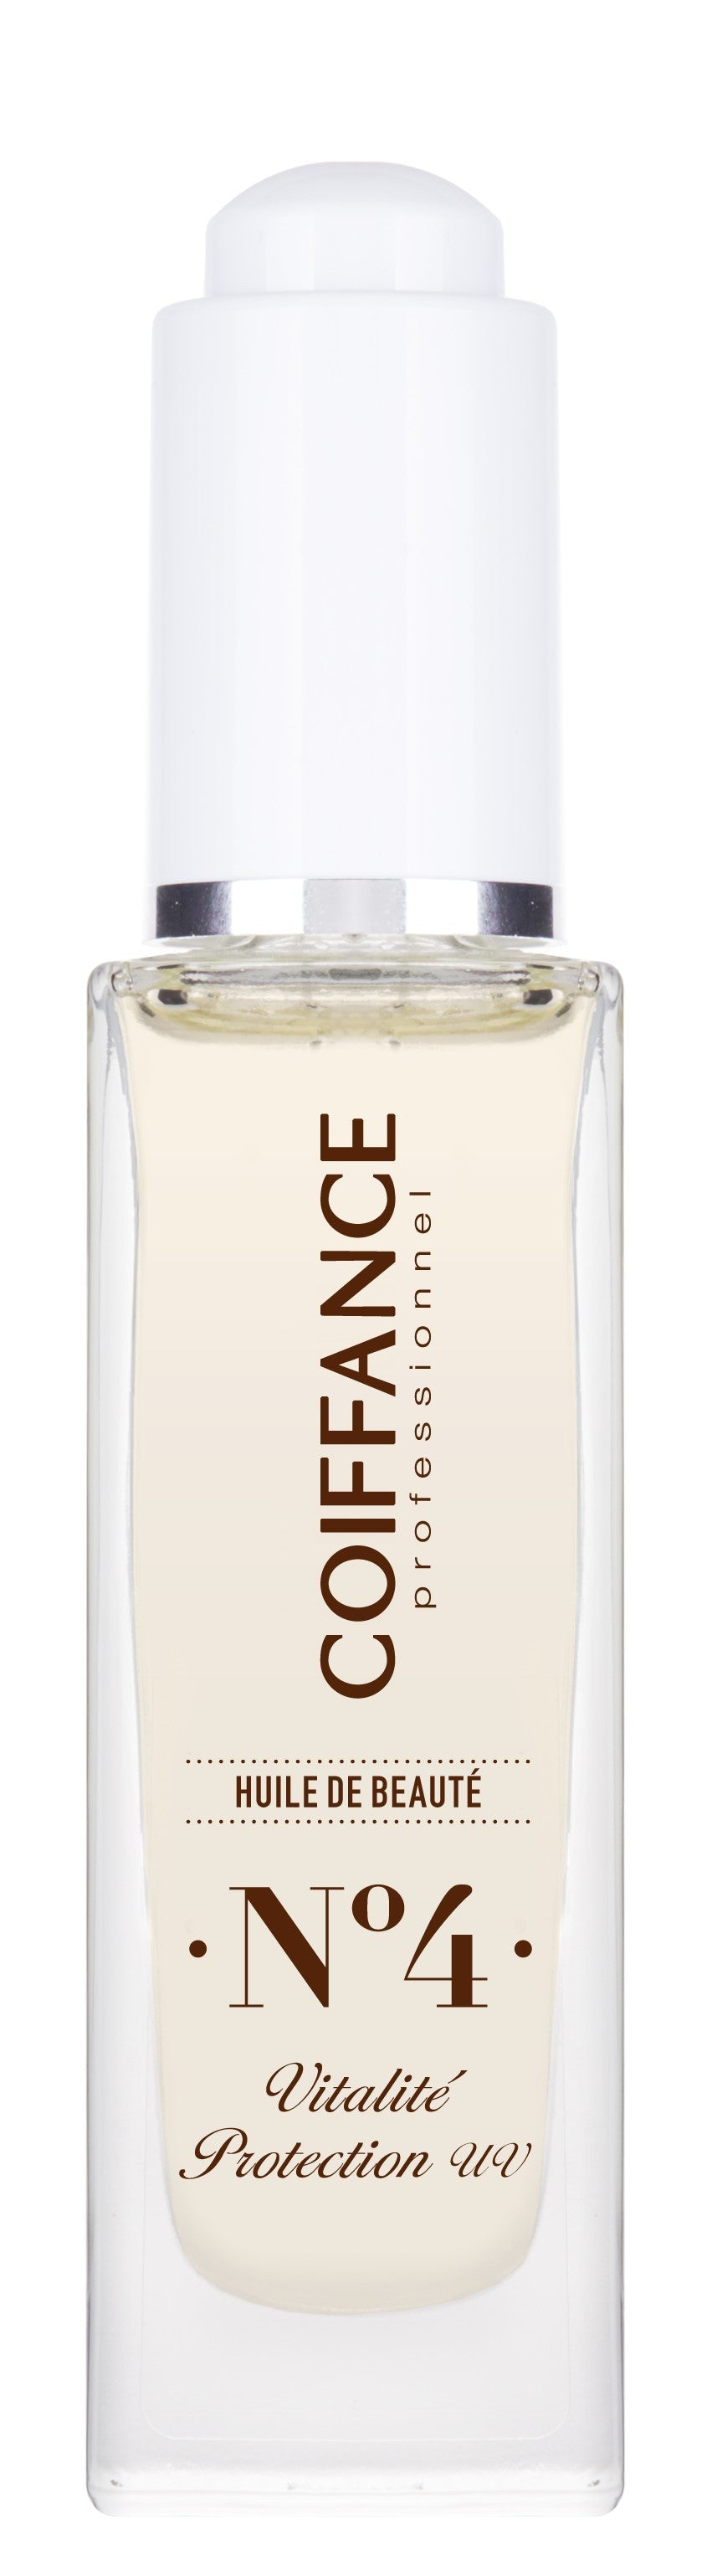 Coiffance - beauty oil - N°4